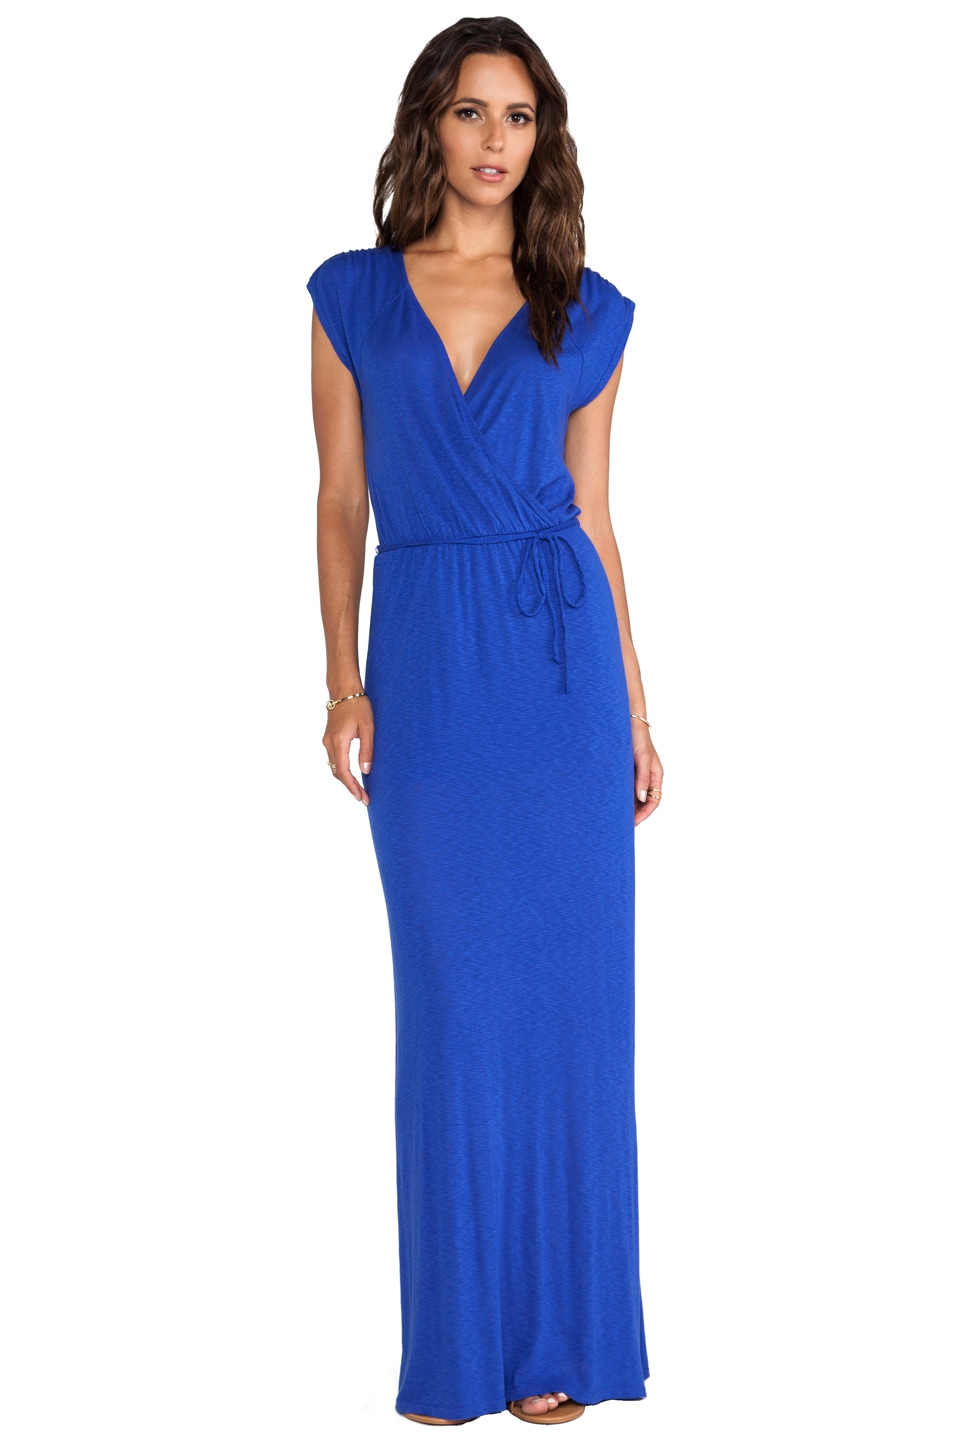 LA Made Wrap Maxi Dress in Scuba